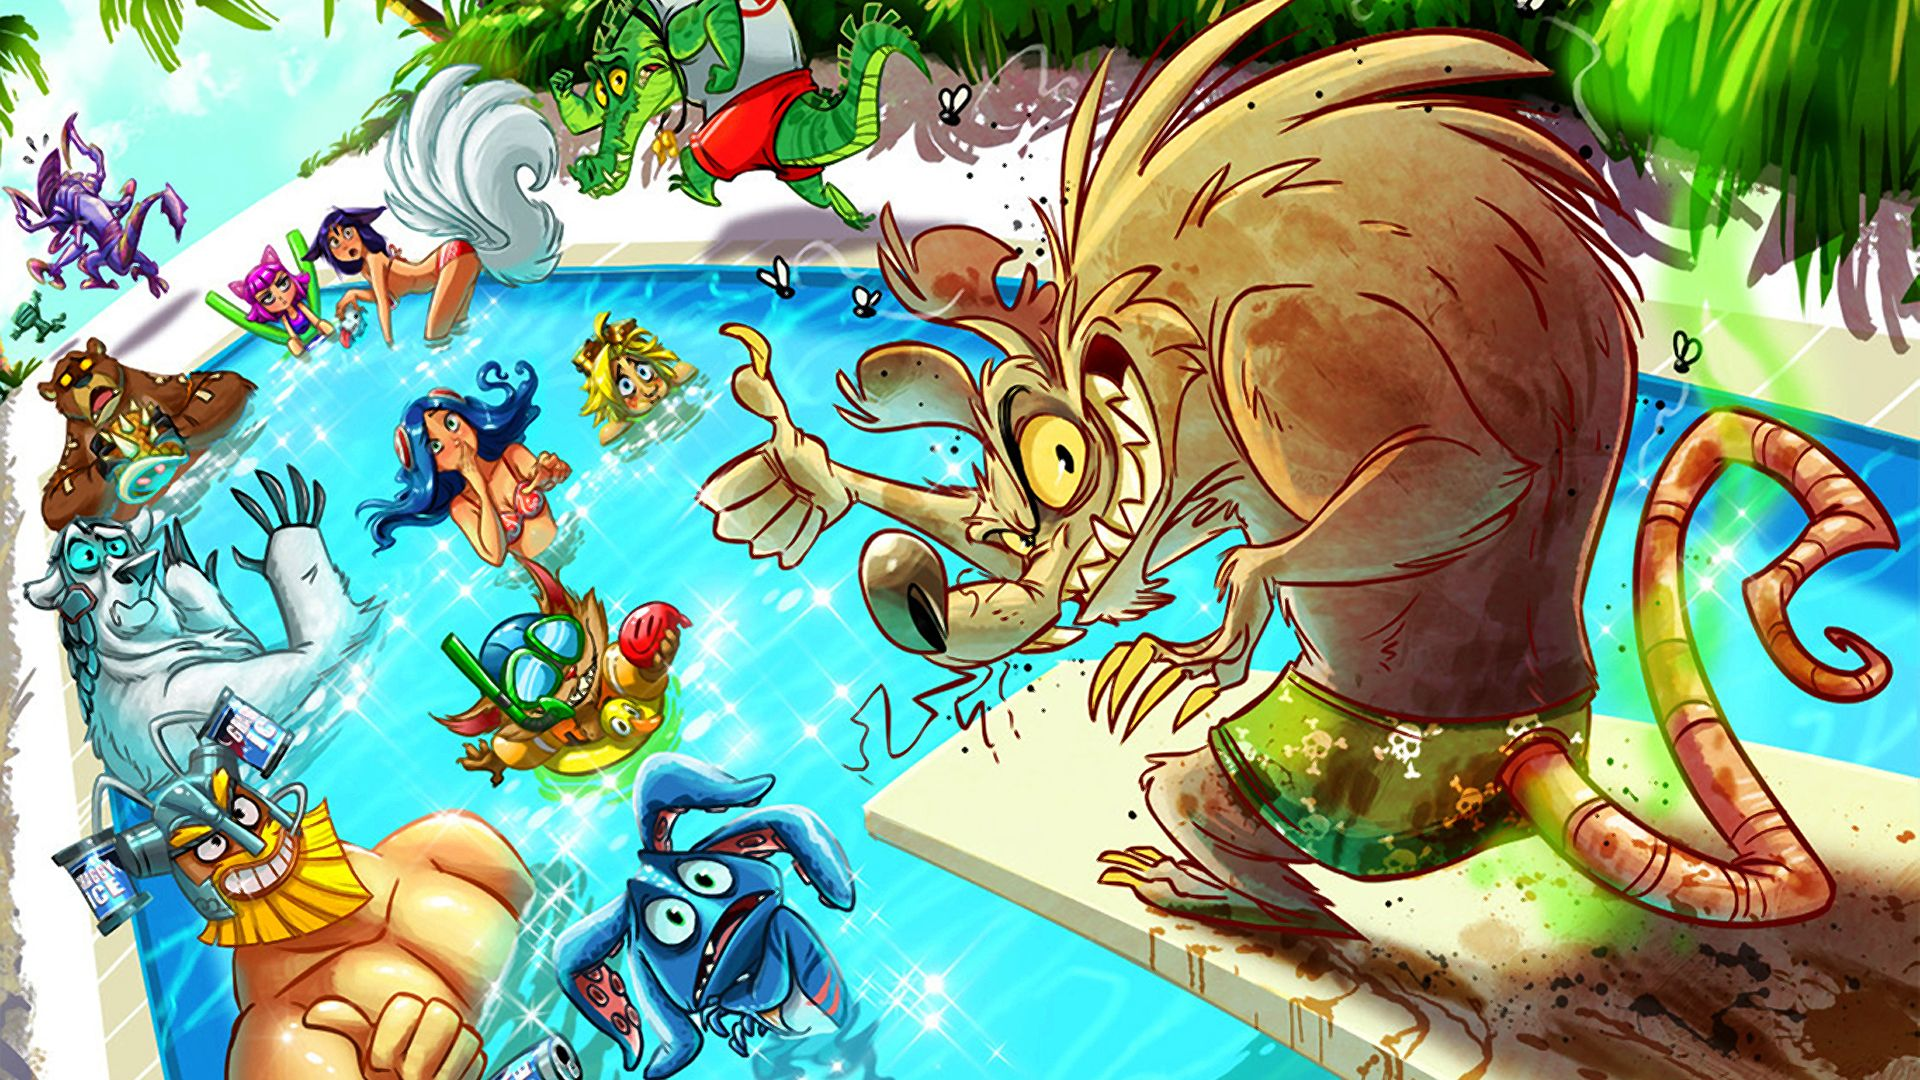 Pool Party Lol Wallpapers Top Free Pool Party Lol Backgrounds